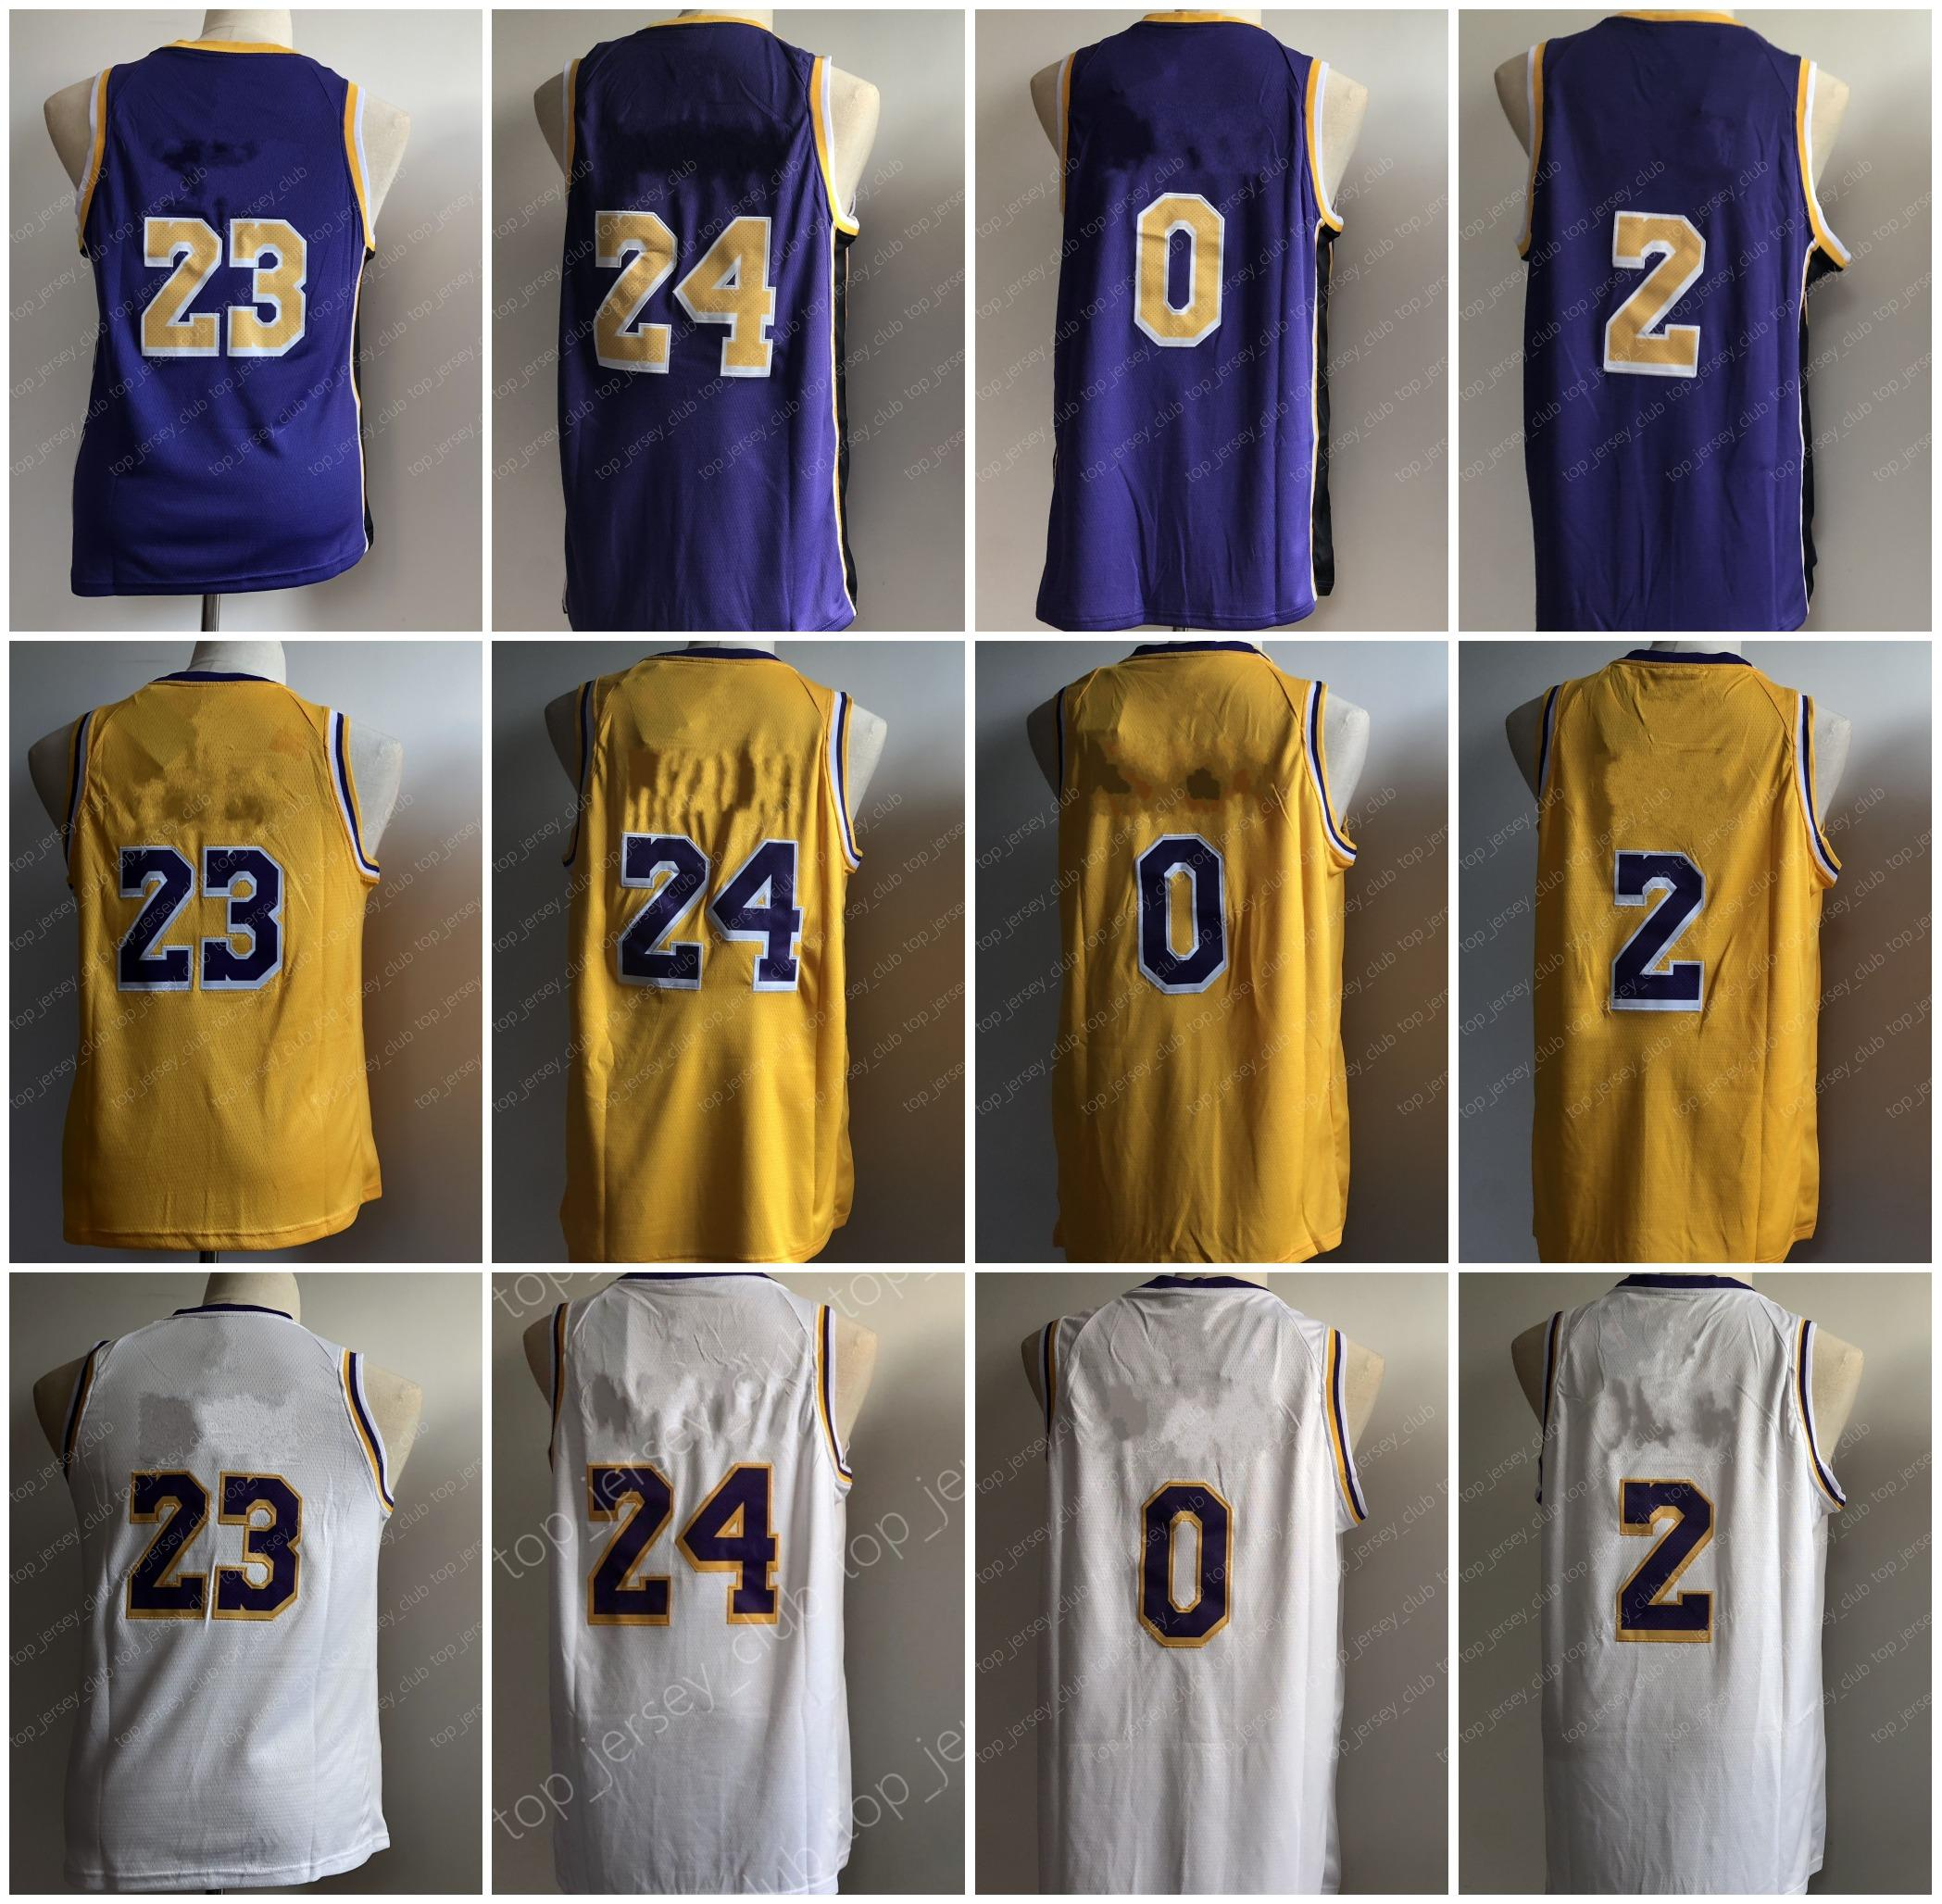 d0de12aecc1 2019 LAL 2019 New Basketball Jersey 23 LBJ 24 KB 0 KK 2 LB Men Women Youth  With Name Number Tag All Stitched From Top jersey club